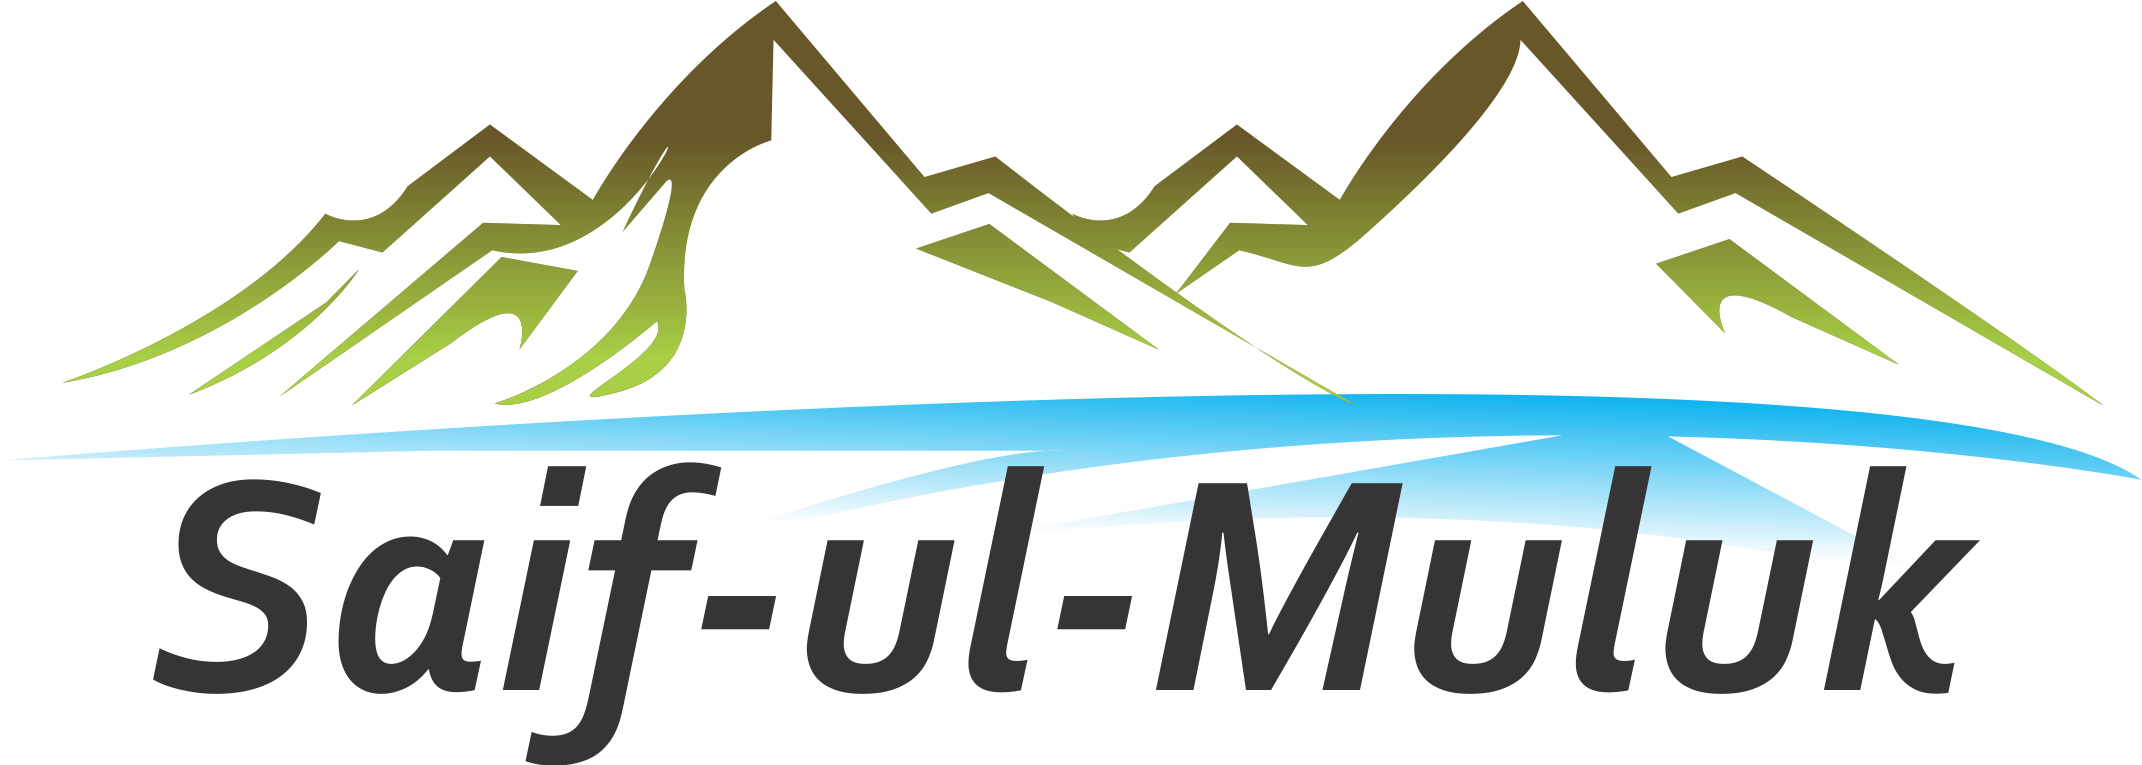 SaifulMuluk Tour and Travel Company | Saif-Ul-Muluk | Shogran - SaifulMuluk Tour and Travel Company | Saif-Ul-Muluk